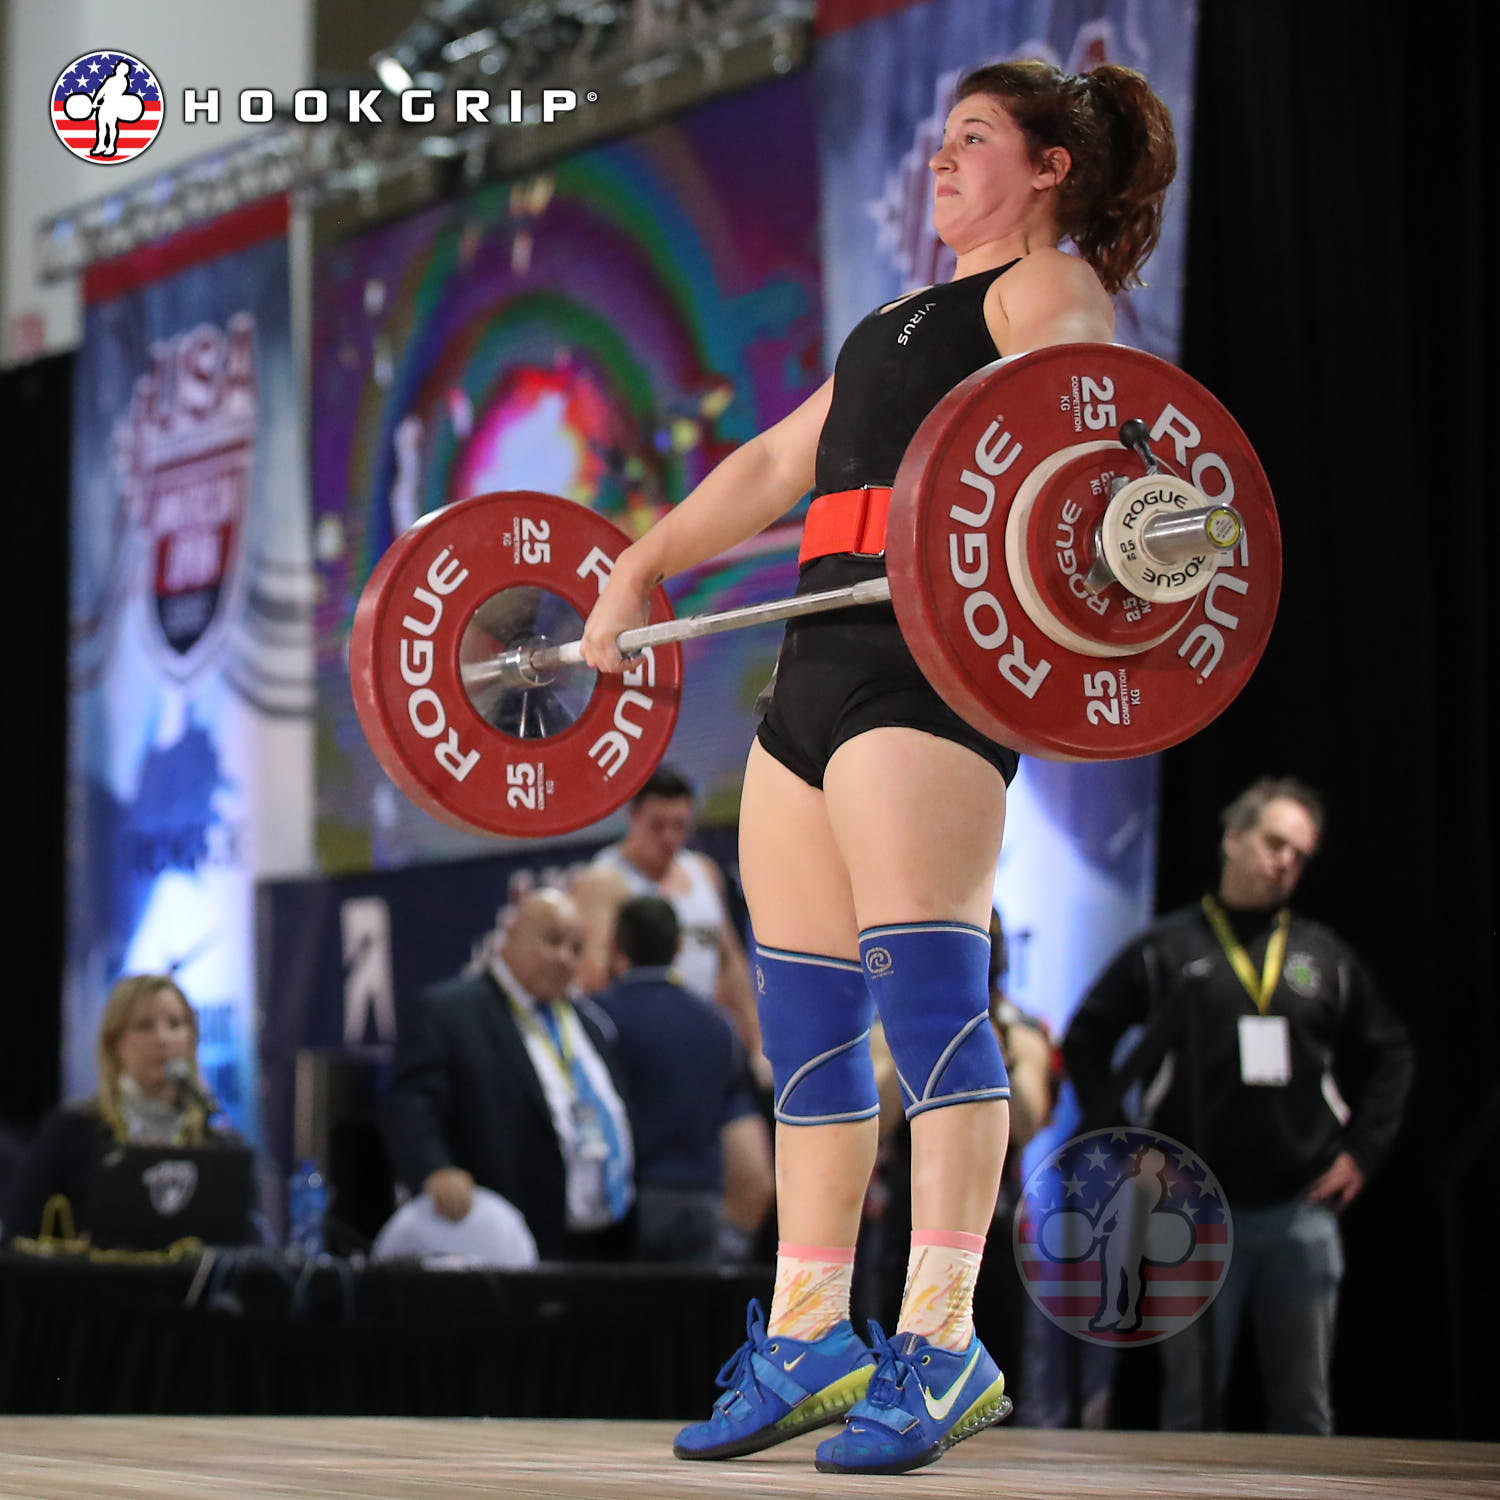 Weightlifting Team / Gym Membership - Includes gym access during open hours, daily weightlifting programming and coaching at local and national meets.